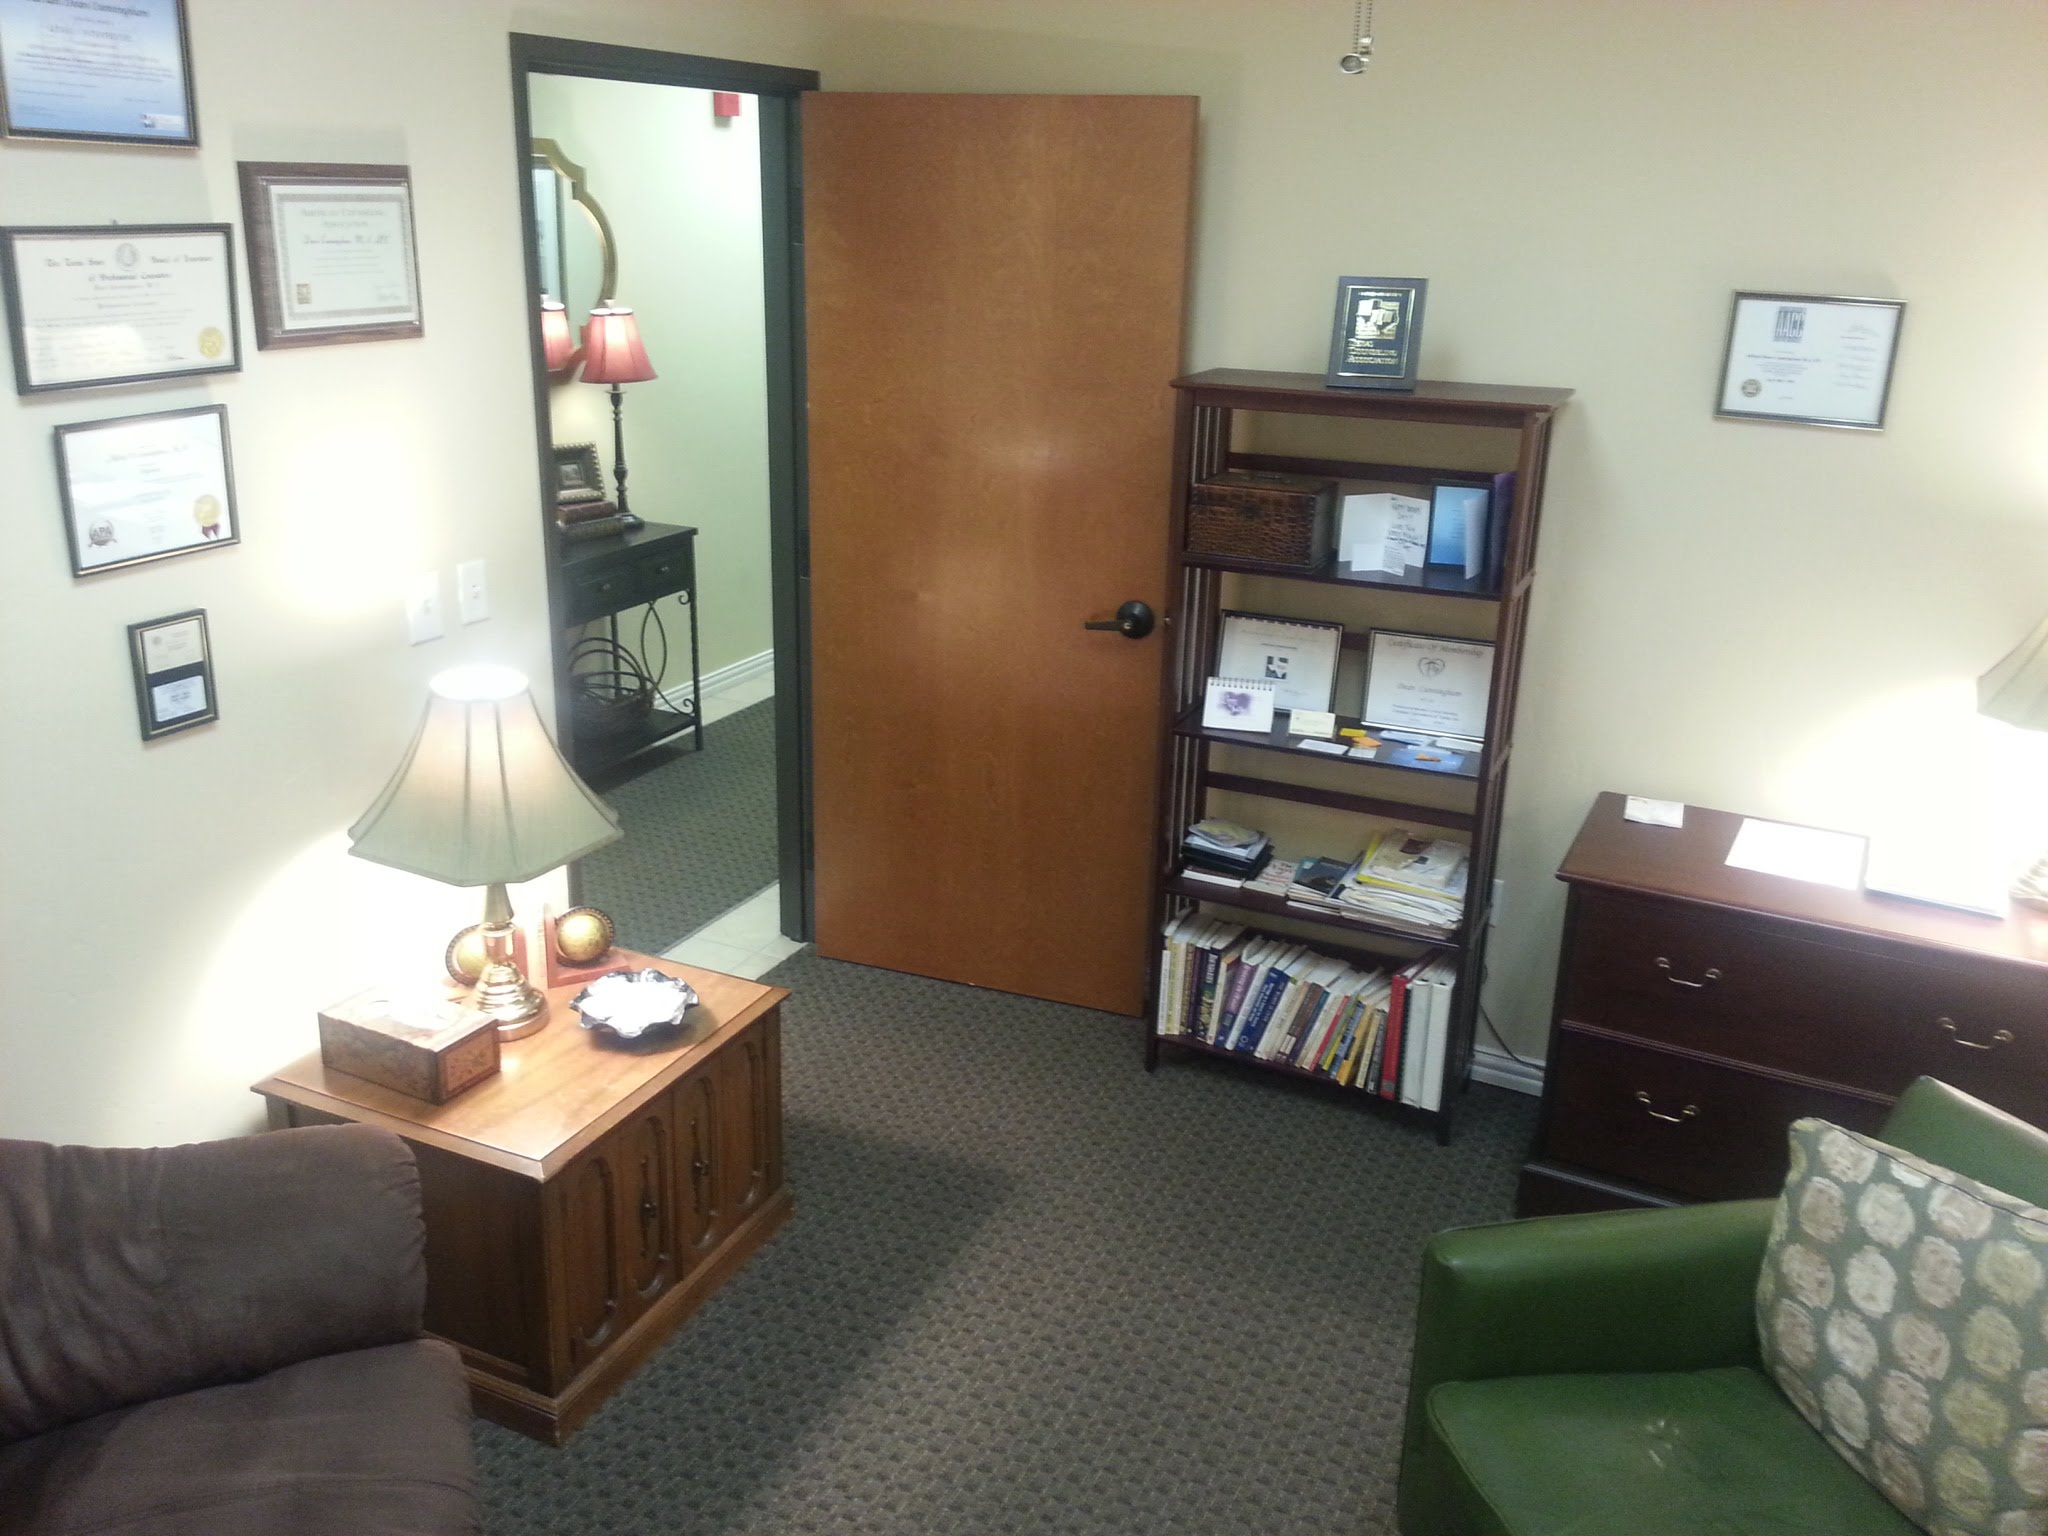 Frisco, Texas Office - 3550 Parkwood Boulevard Suite A-201 Frisco, Texas 75034